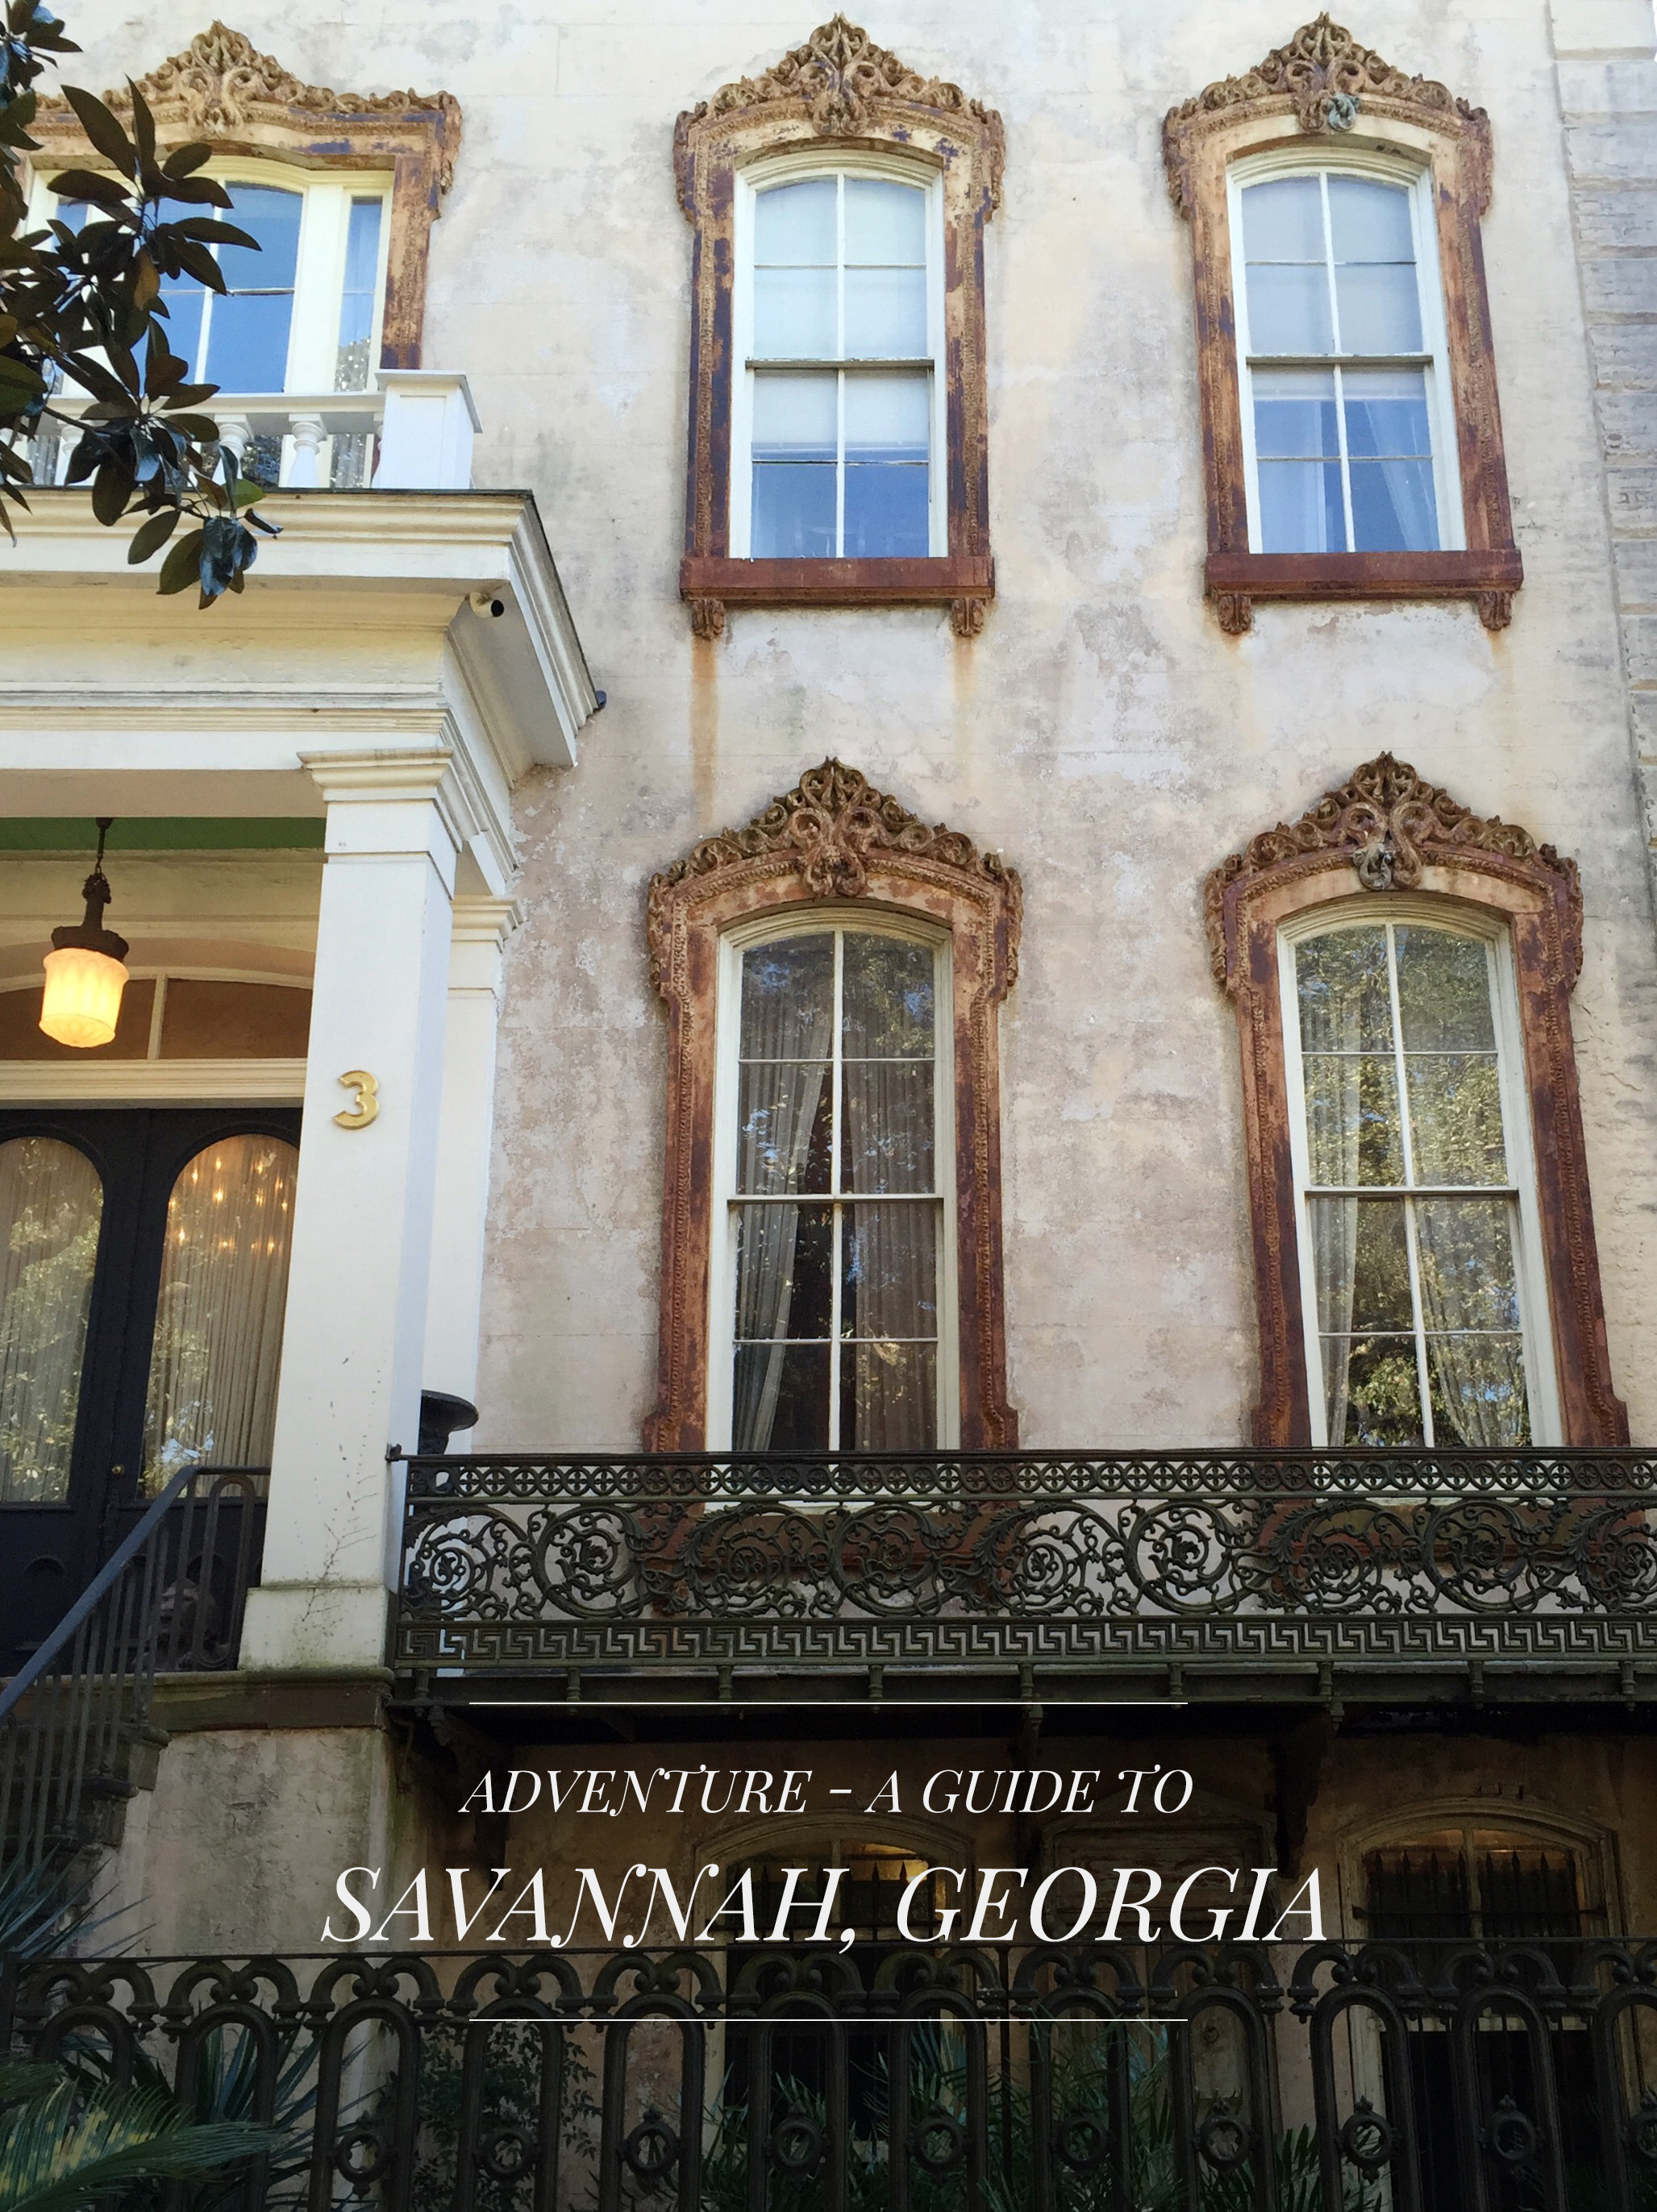 Beautiful architecture in the Historic District of Savannah, Georgia.